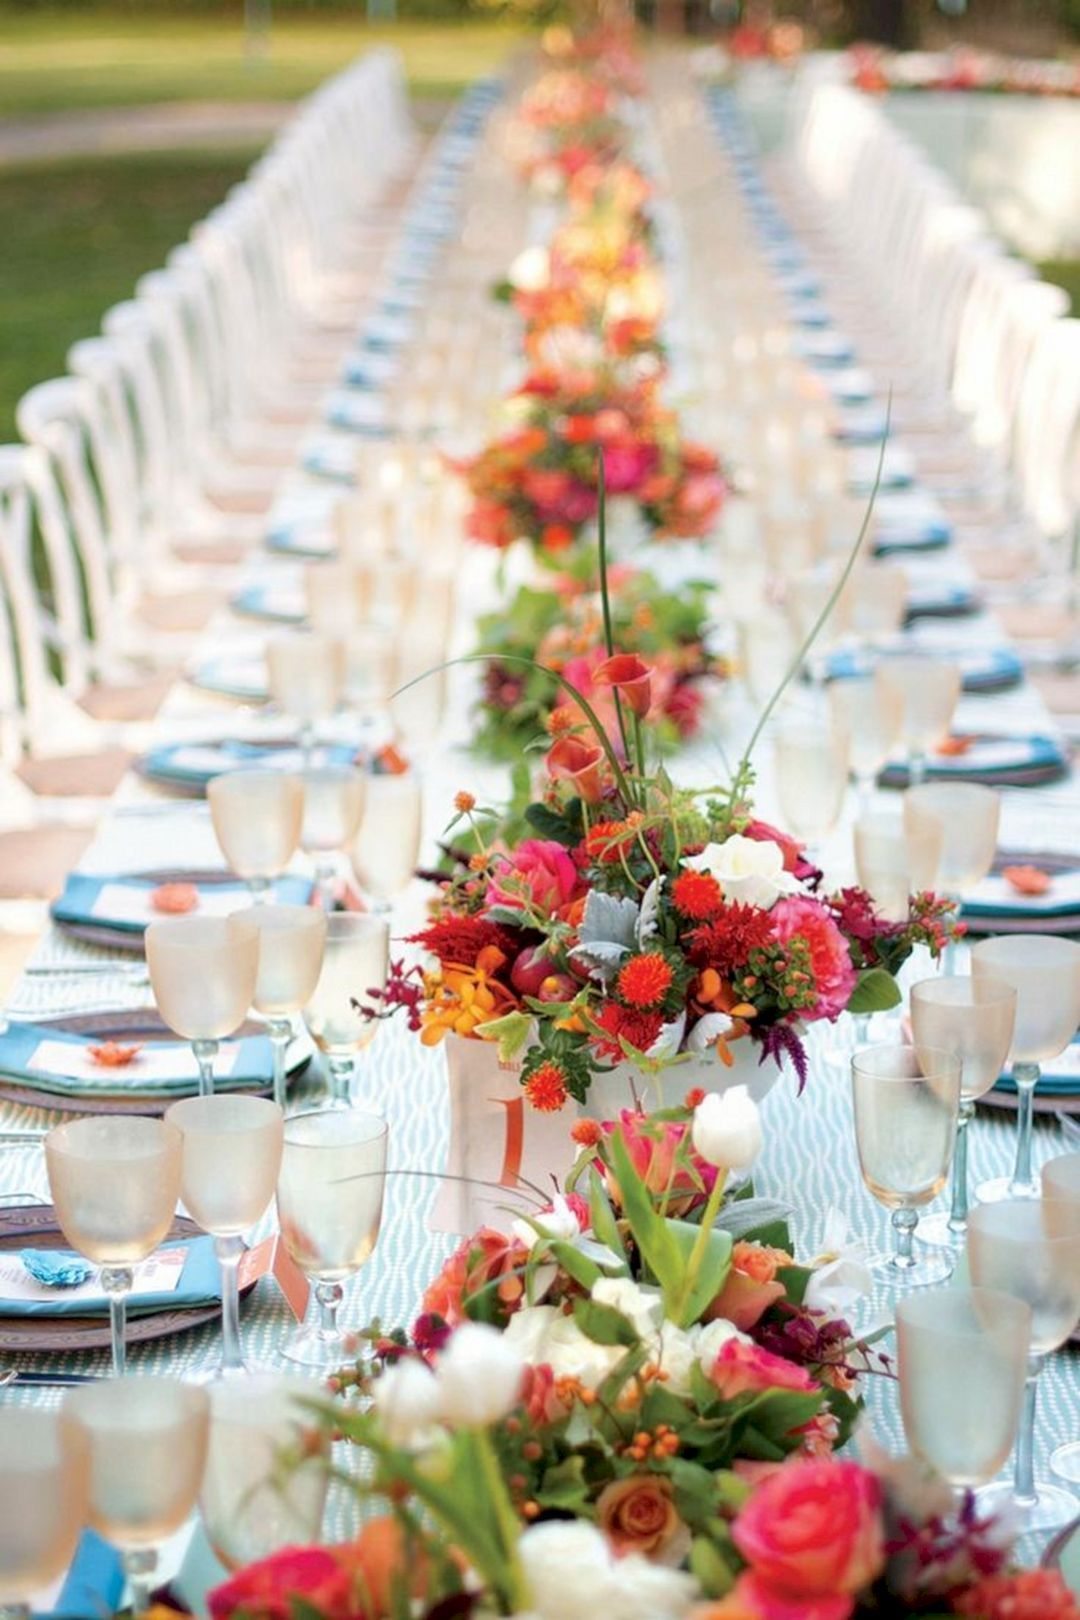 Wedding dinner decoration ideas   Gorgeous Spring Wedding Theme Ideas For Pretty Spring Season